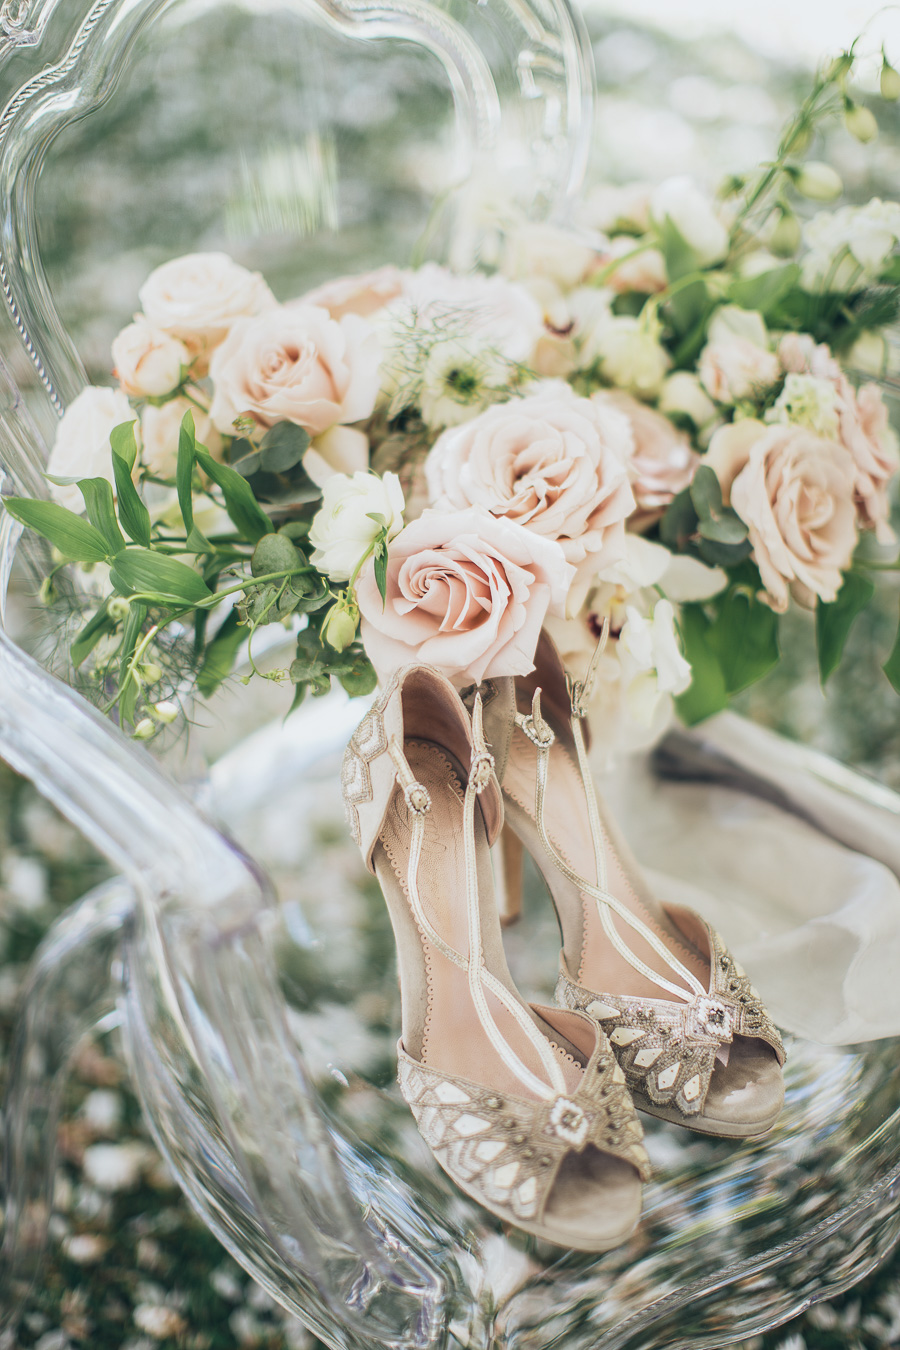 Belle Epoque wedding style inspiration with Wedhead, image credit Elina Sazonova Photography (20)